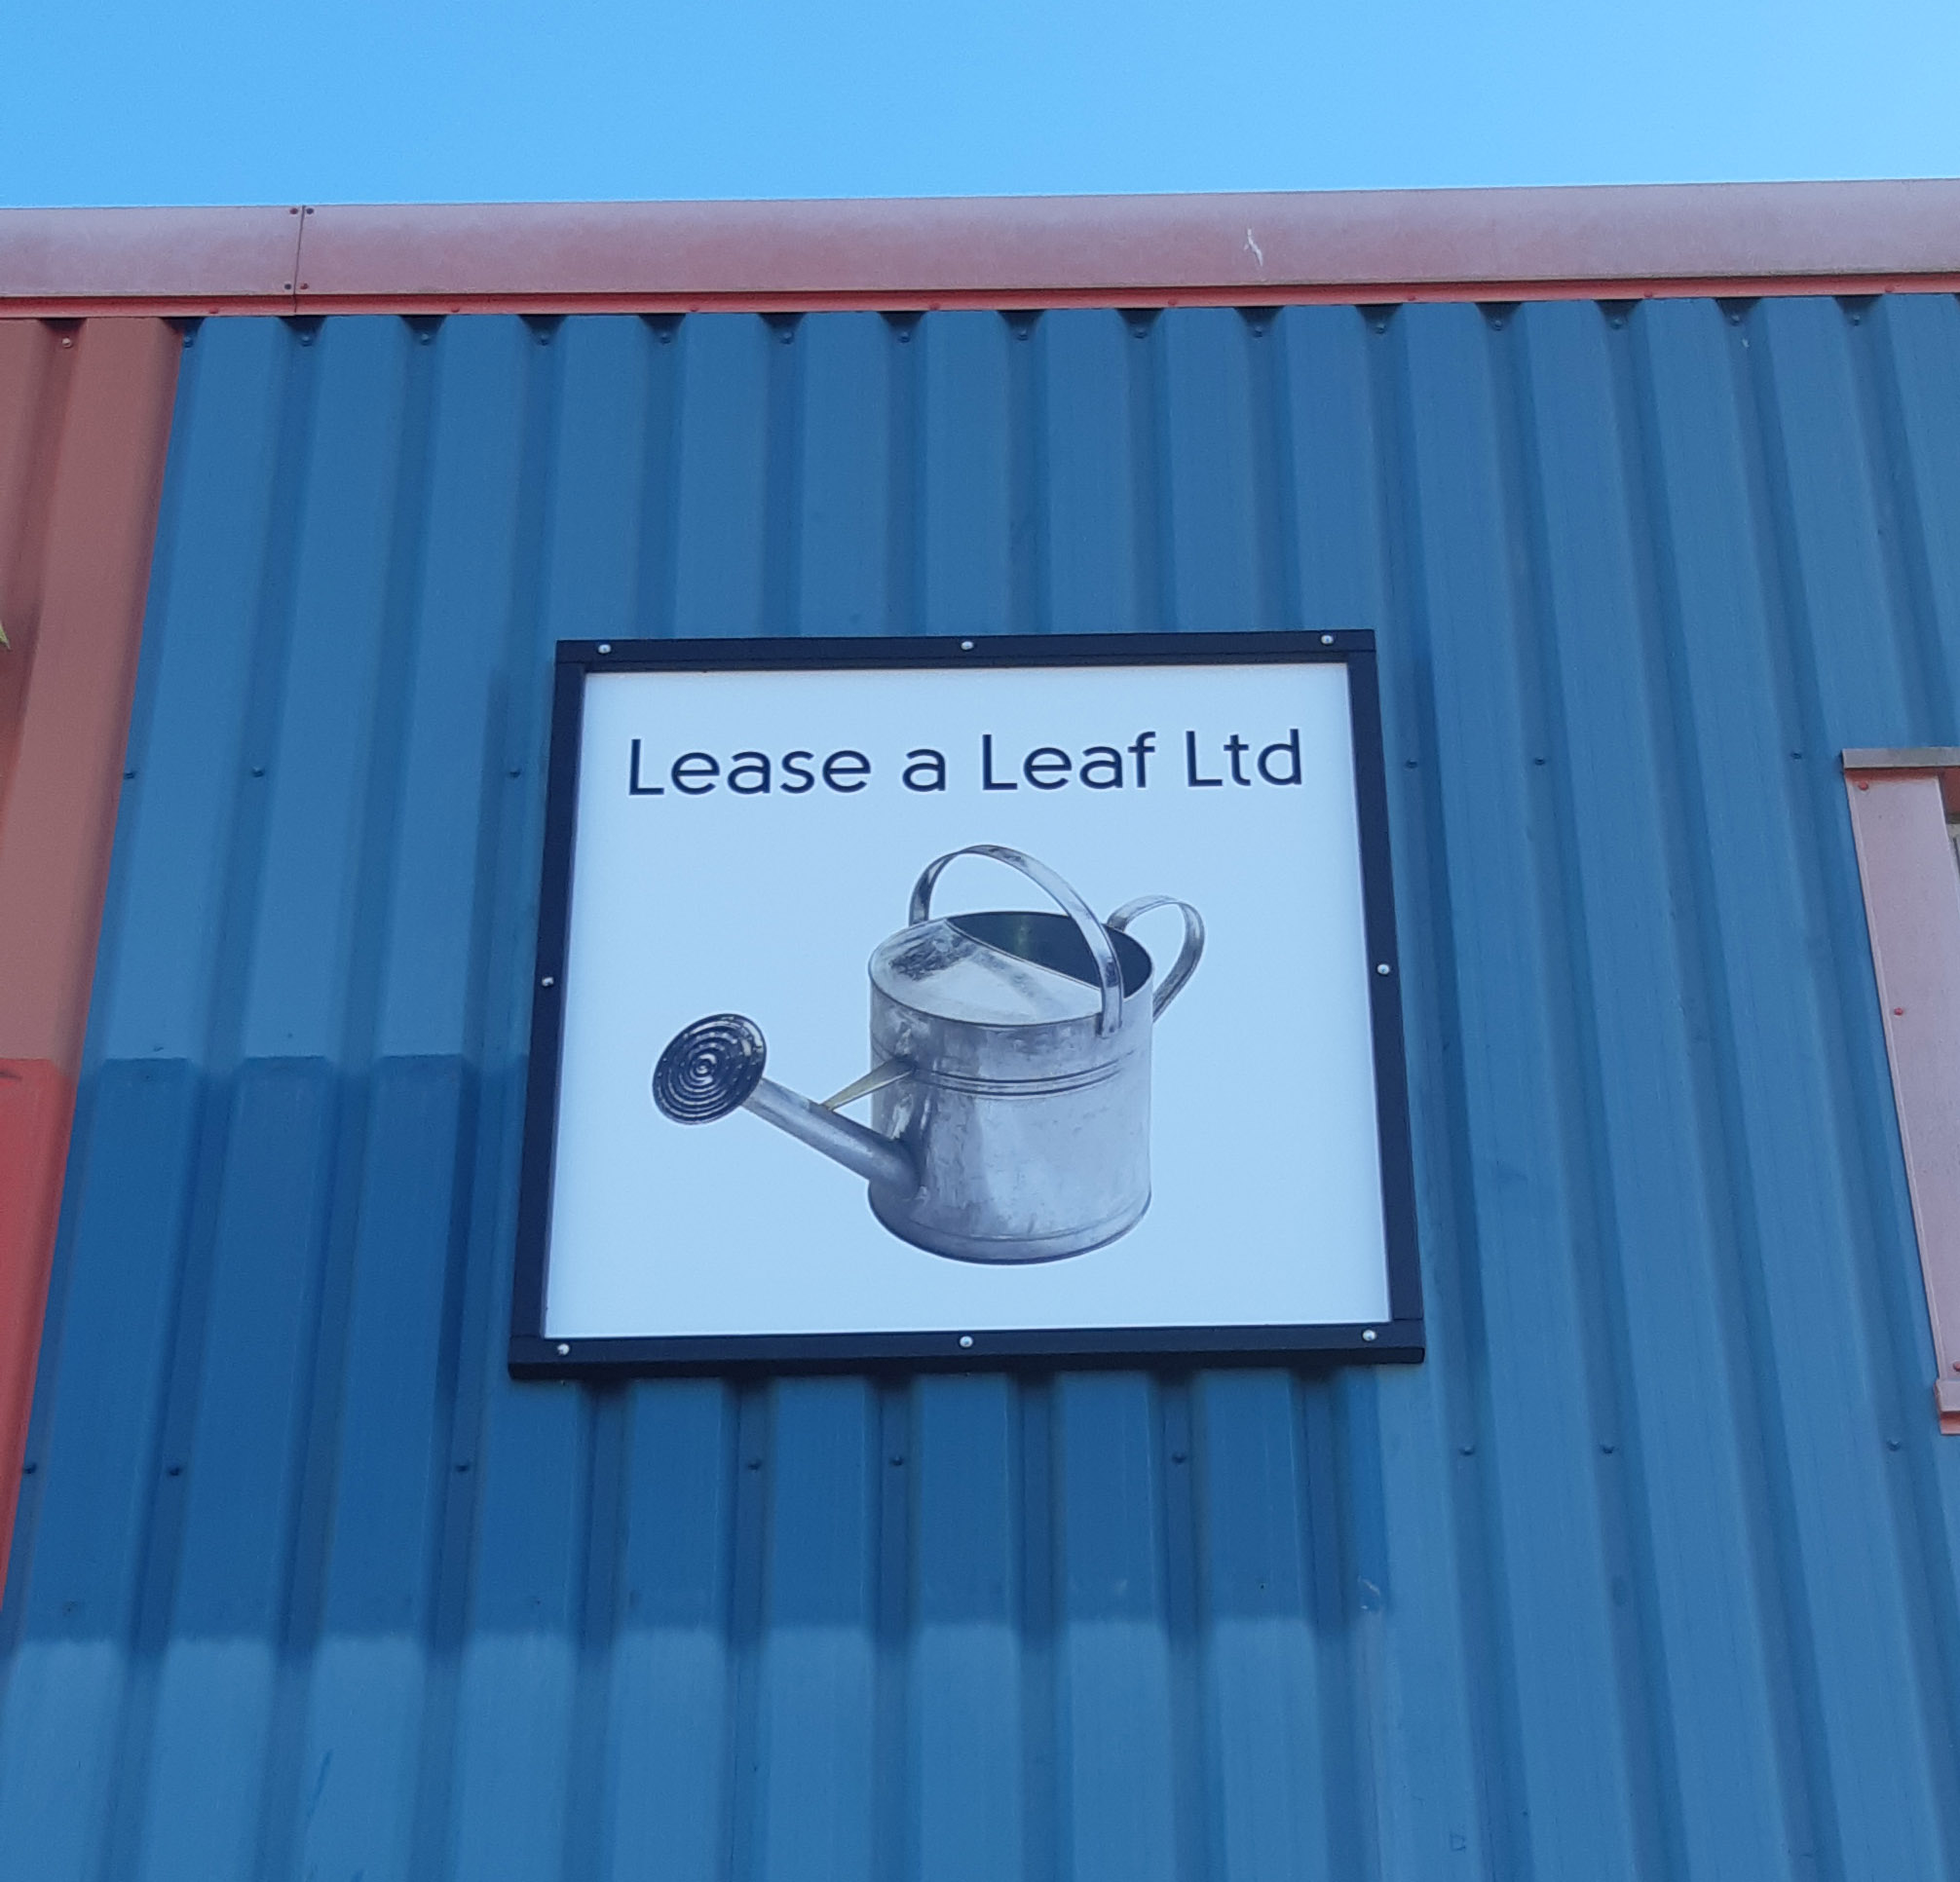 Lease-A-Leaf-Sign1